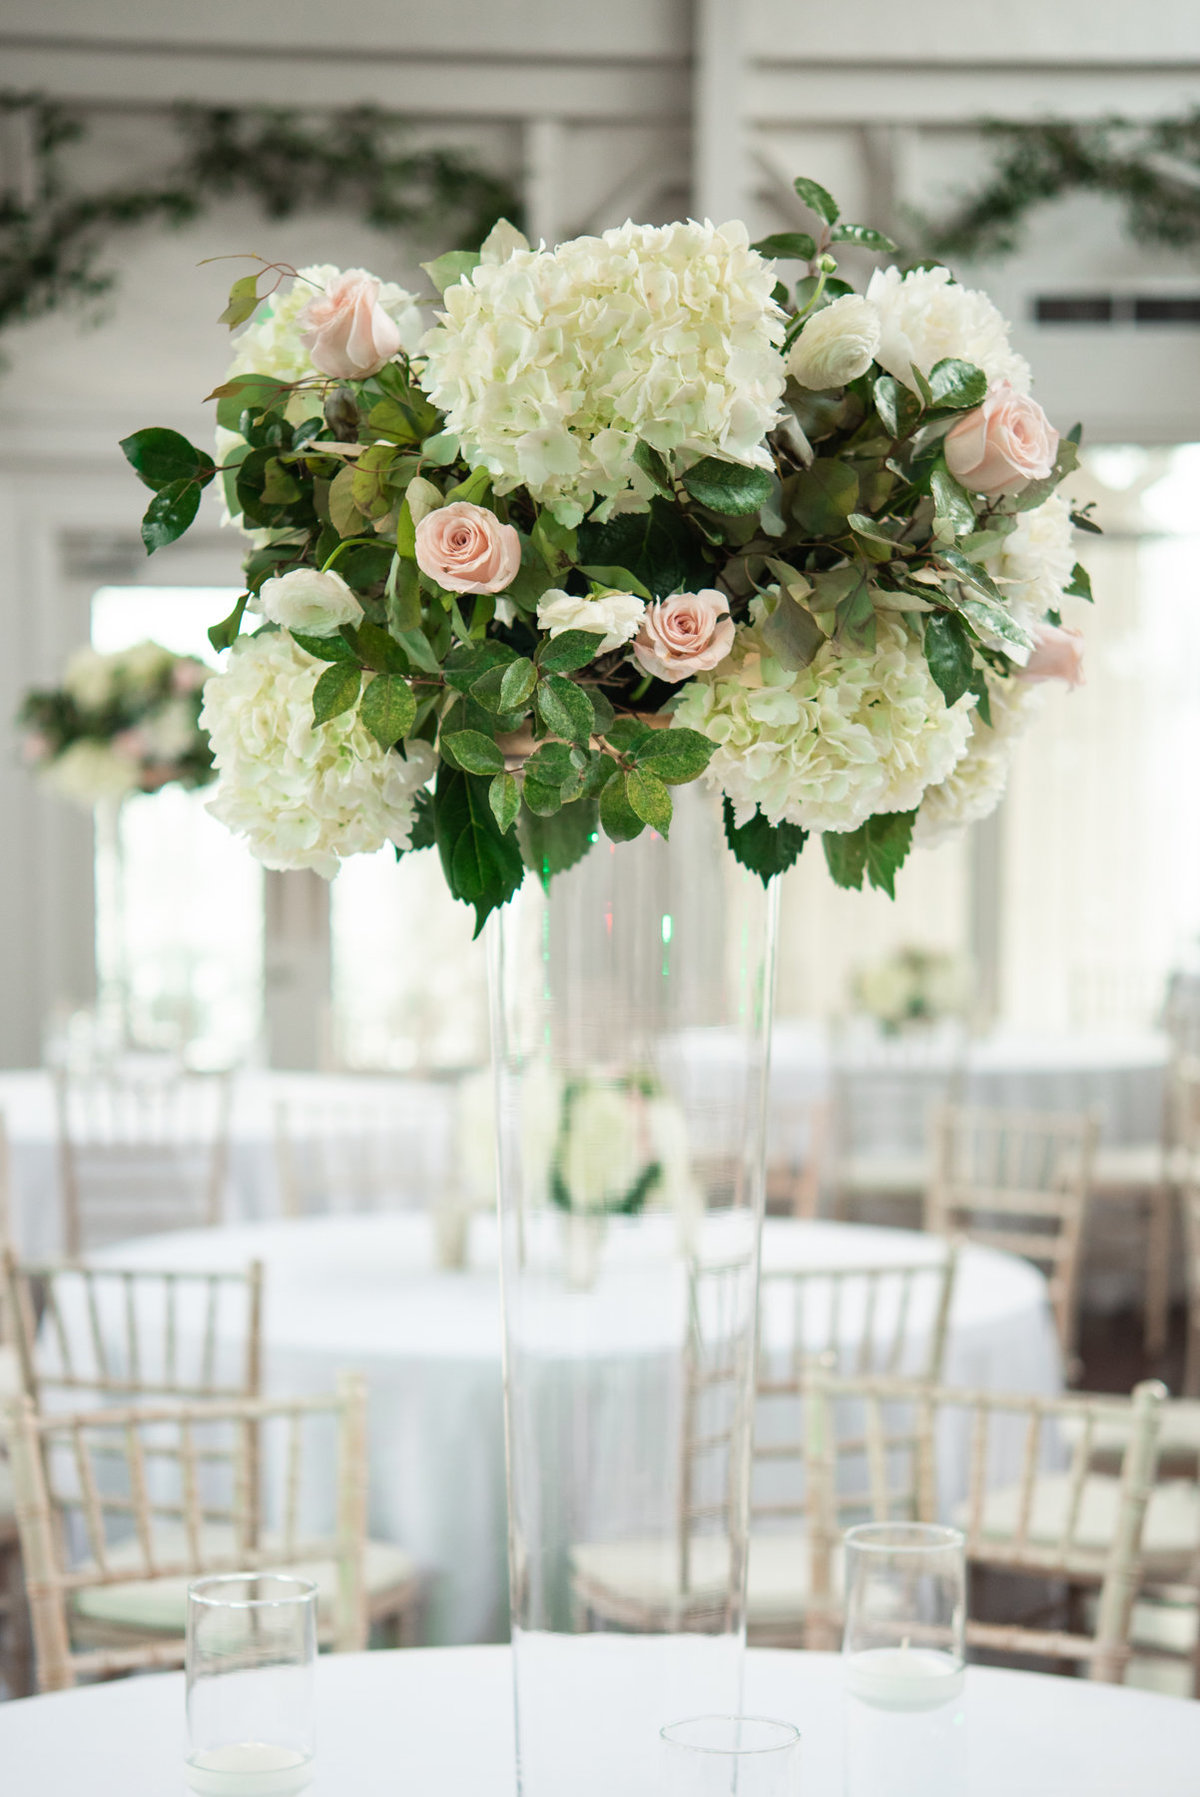 heaslett design table arrangement